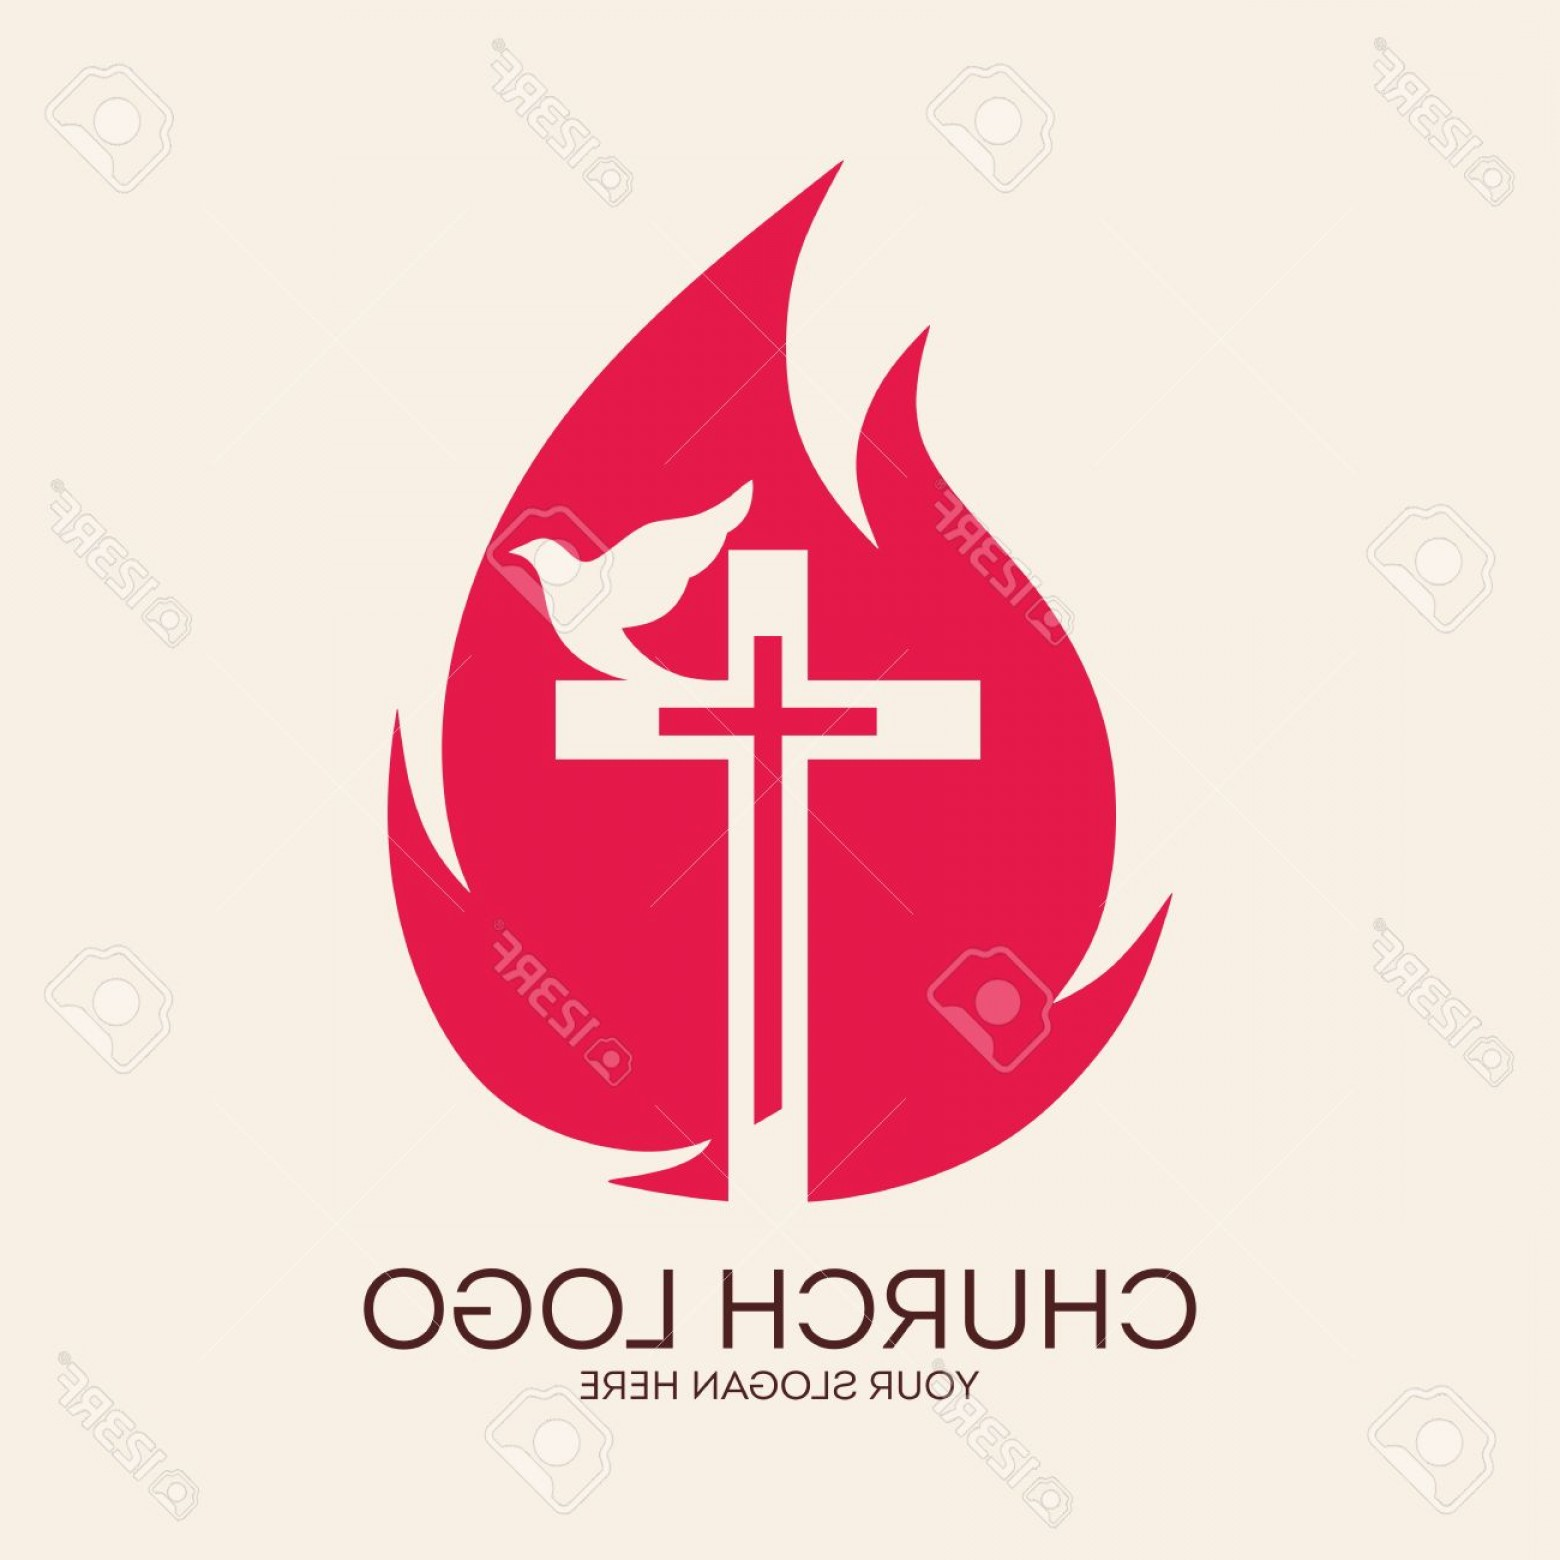 Cross Vector Logos: Photostock Vector Church Logo Cross Flames Dove Pentecost Symbol Icon Holy Spirit Fire